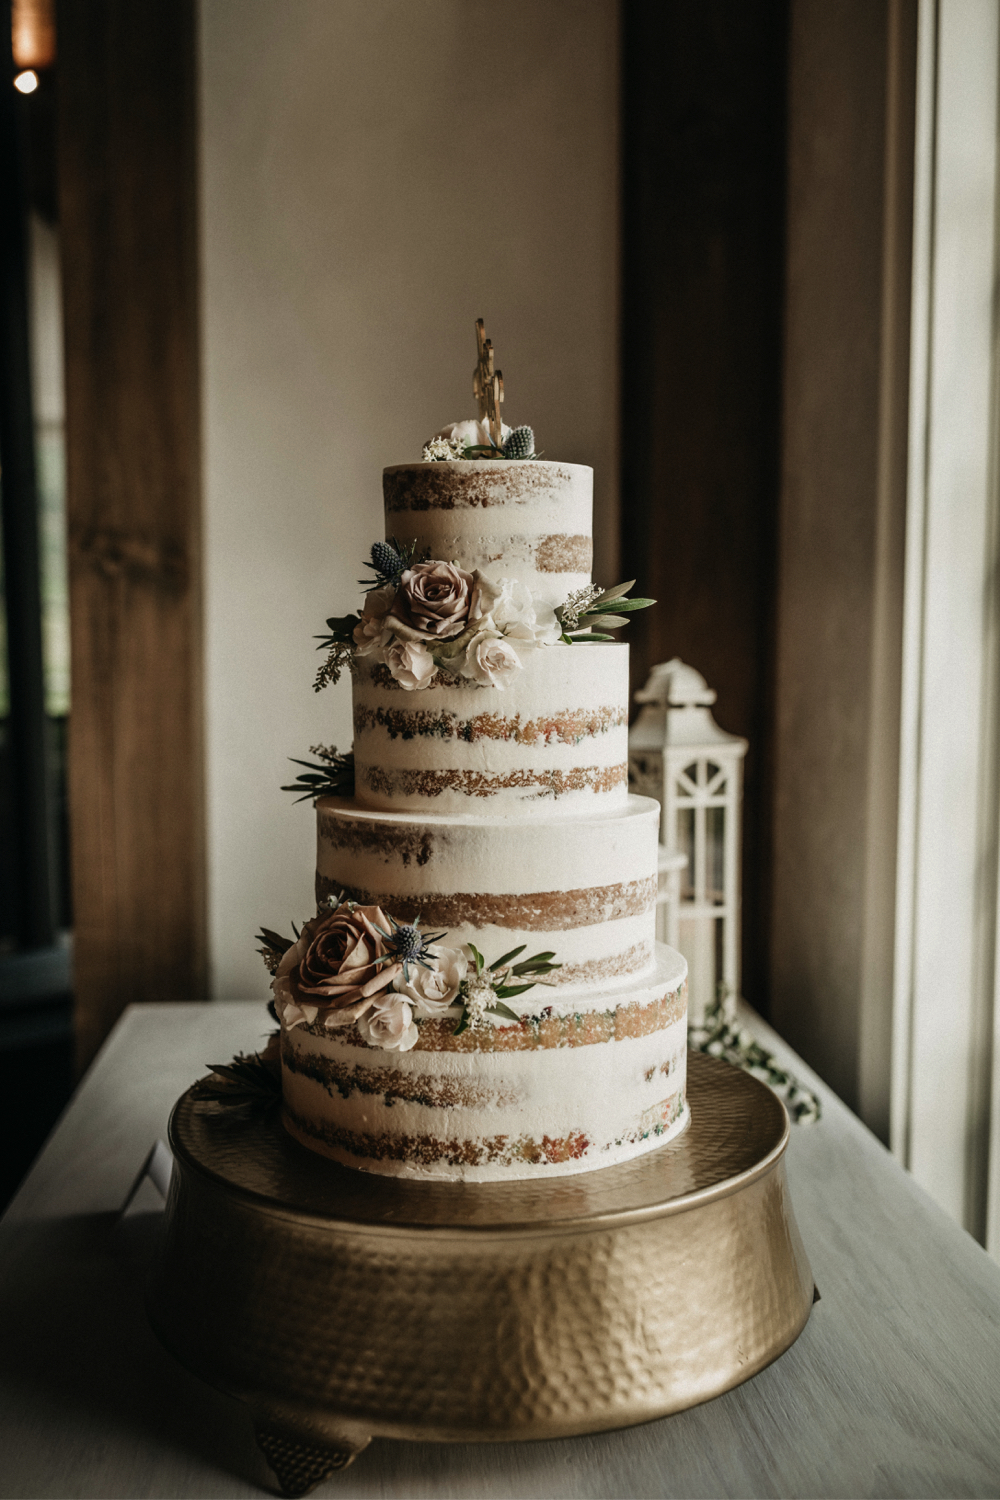 Naked-wedding-cake-trends_1.jpg